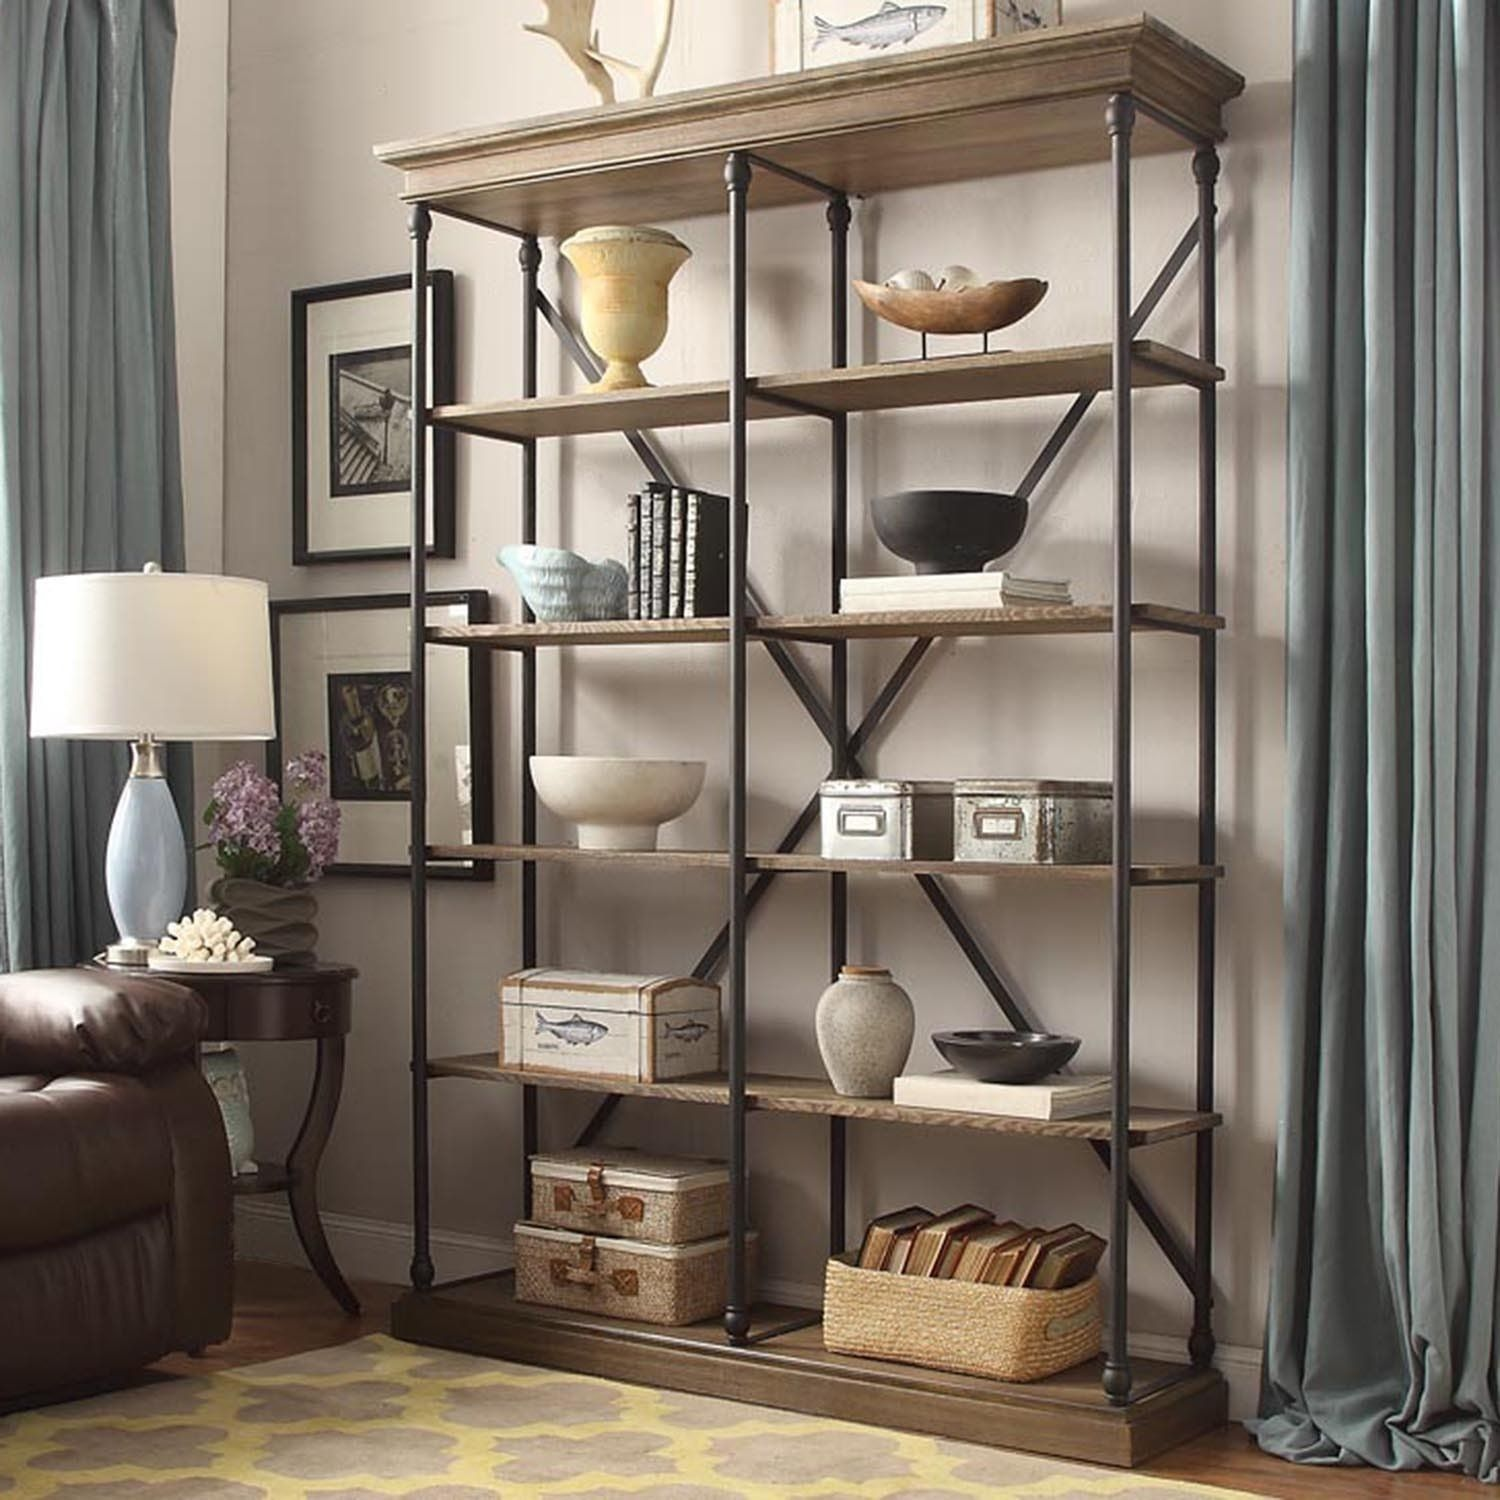 Barnstone Cornice Double Shelving Bookcase by iNSPIRE Q